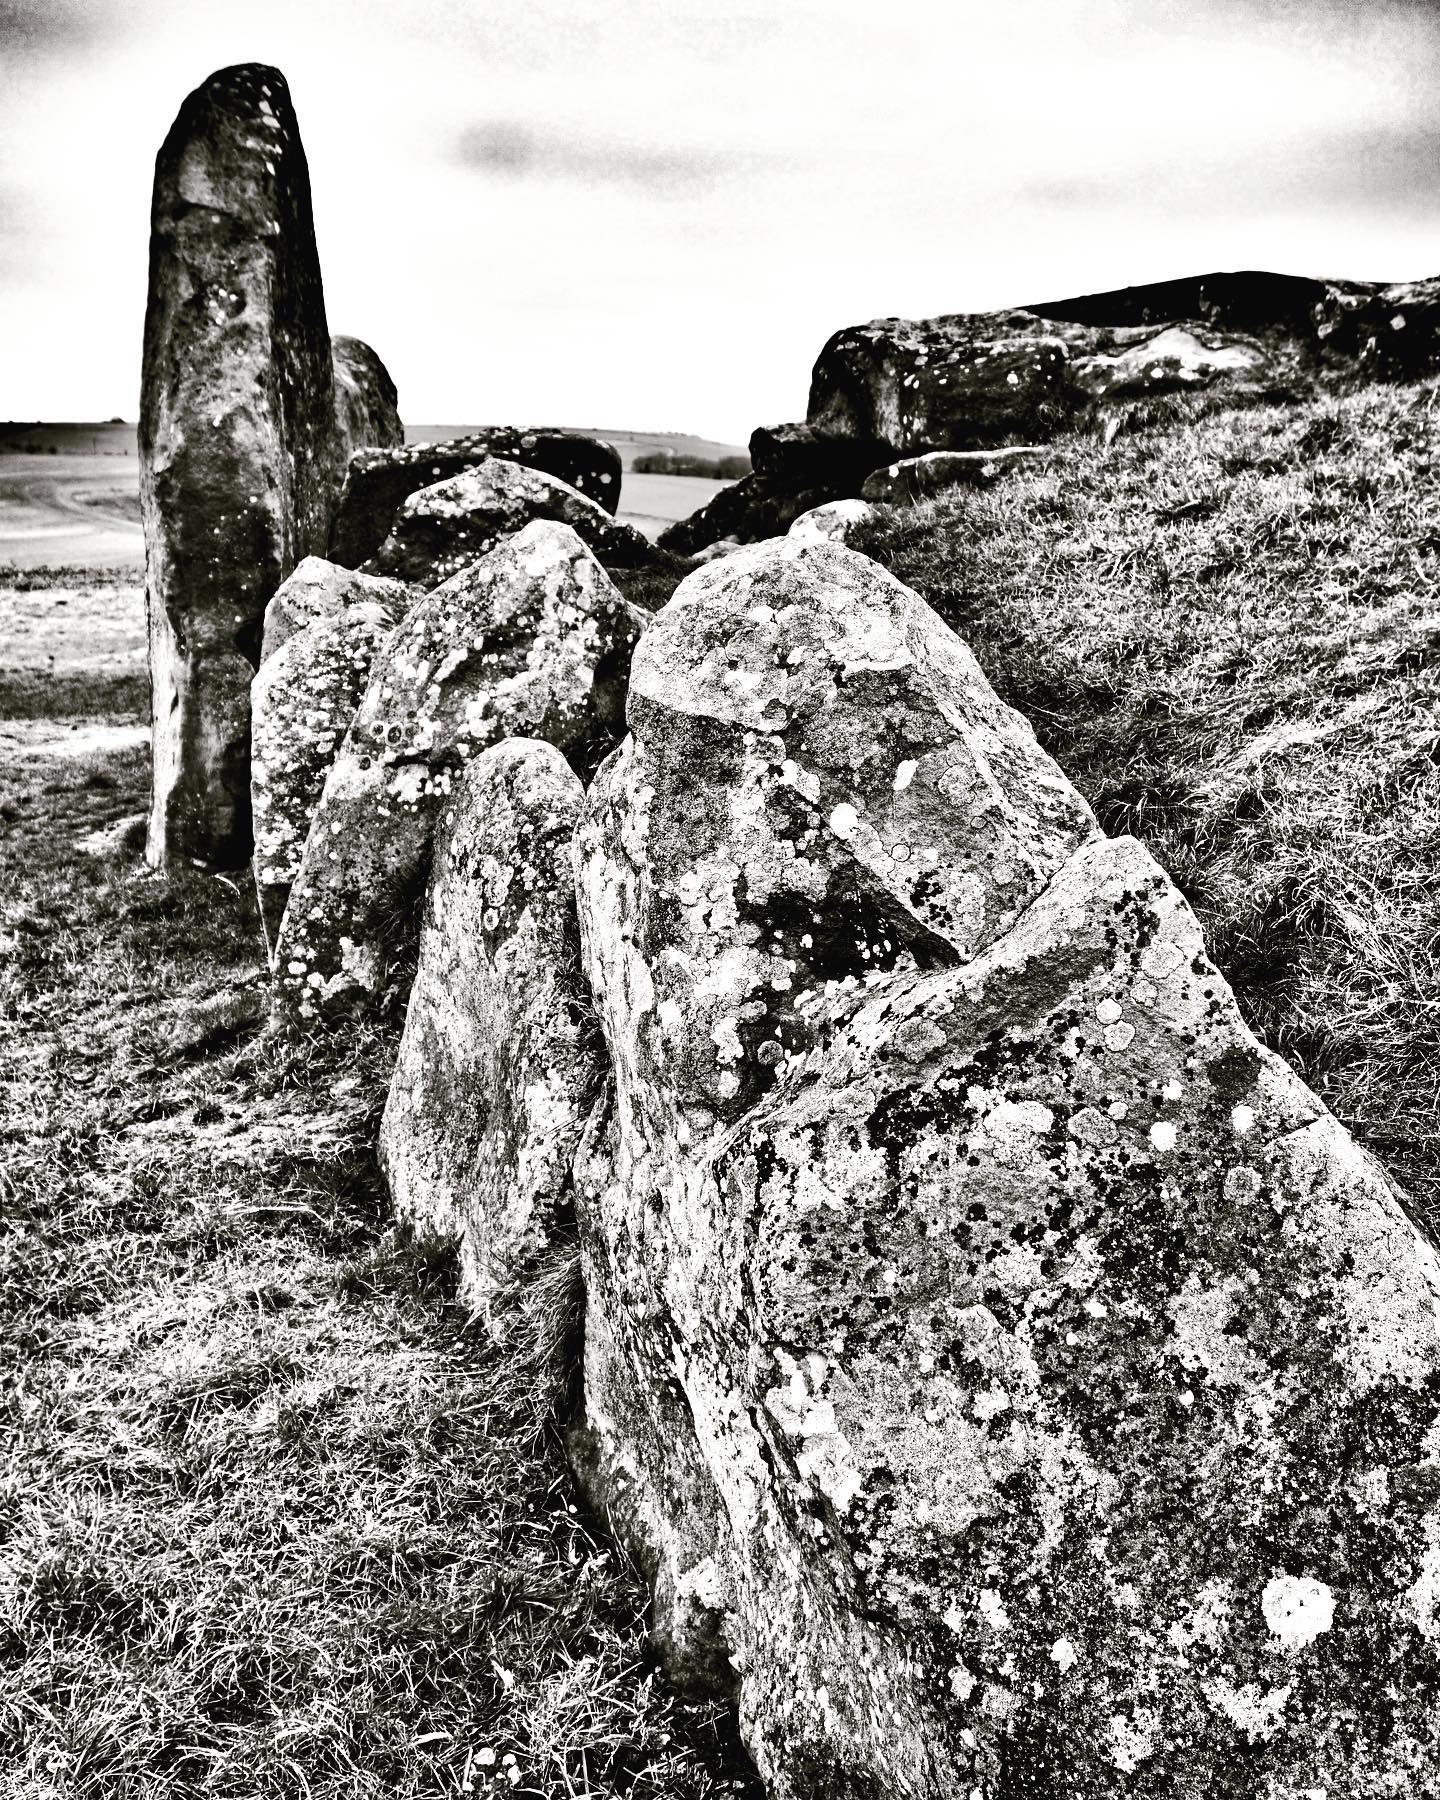 west kennet long barrow. after the first burials in around 36725-70 bce it was again reused between 3620 and 3240 BCE as a burial space, receiving both human and animal remains over a period of several centuries. various flint tools and ceramic sherds were also placed within it. during this period in the late neolithic, the entrance to the long barrow was blocked up with the addition of large sarsen boulders. this period of the later neolithic and early bronze age, the landscape around west kennet long barrow was subject to the widespread construction of ceremonial monuments... #earlyneolithic #neolithic #archaeology #longbarrows #westkennet #cotswoldsevern #costwoldseverngroup #avebury #earlyagriculture #ceremonia #blockingstonemore at montagecity.com